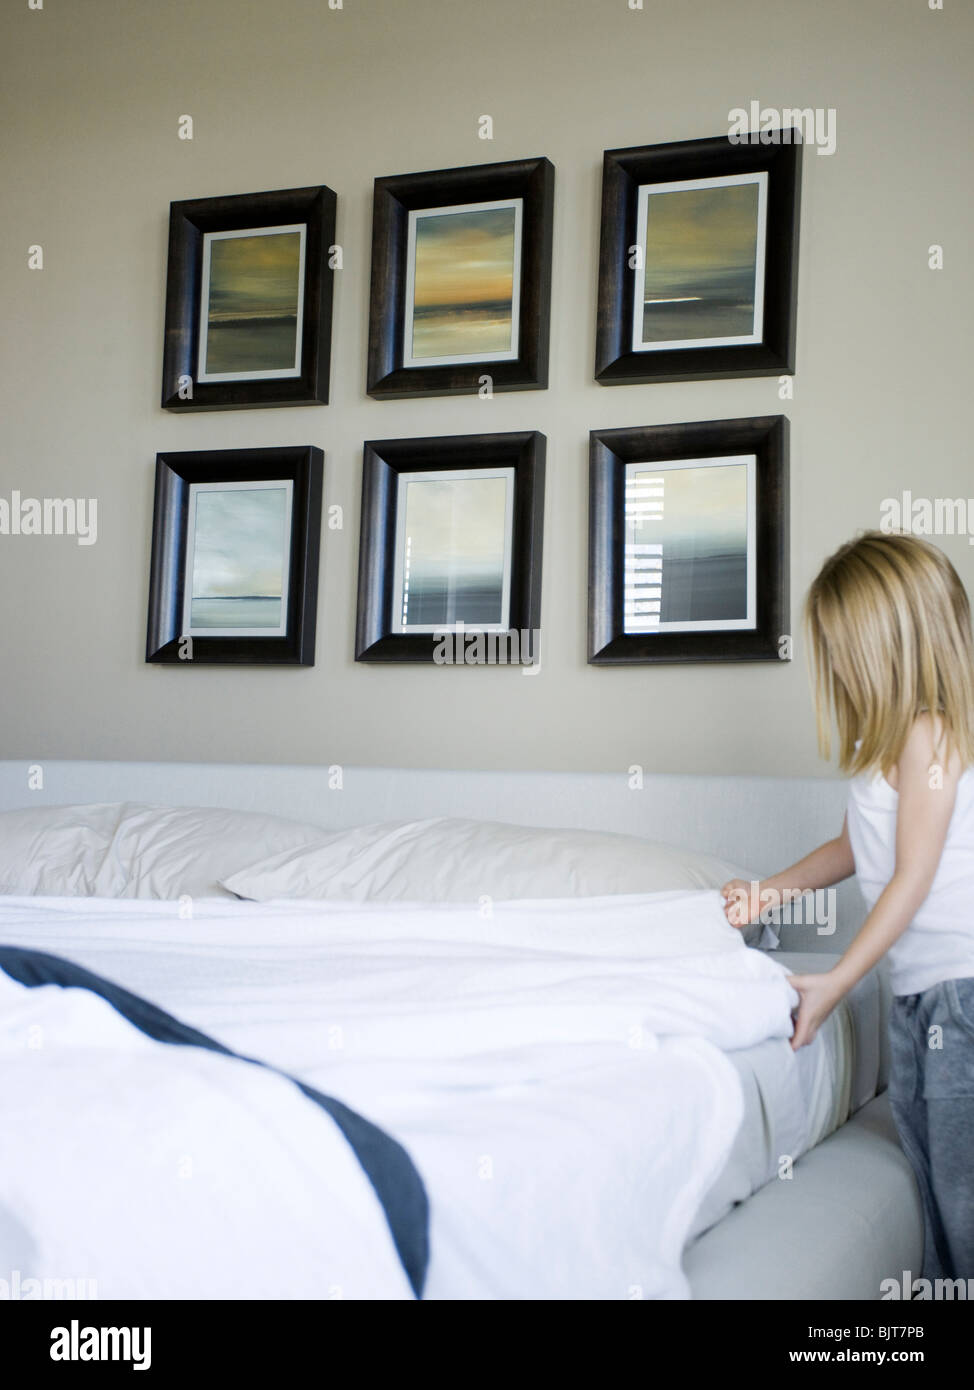 USA, Utah, Provo, Girl (4-5) making bed - Stock Image